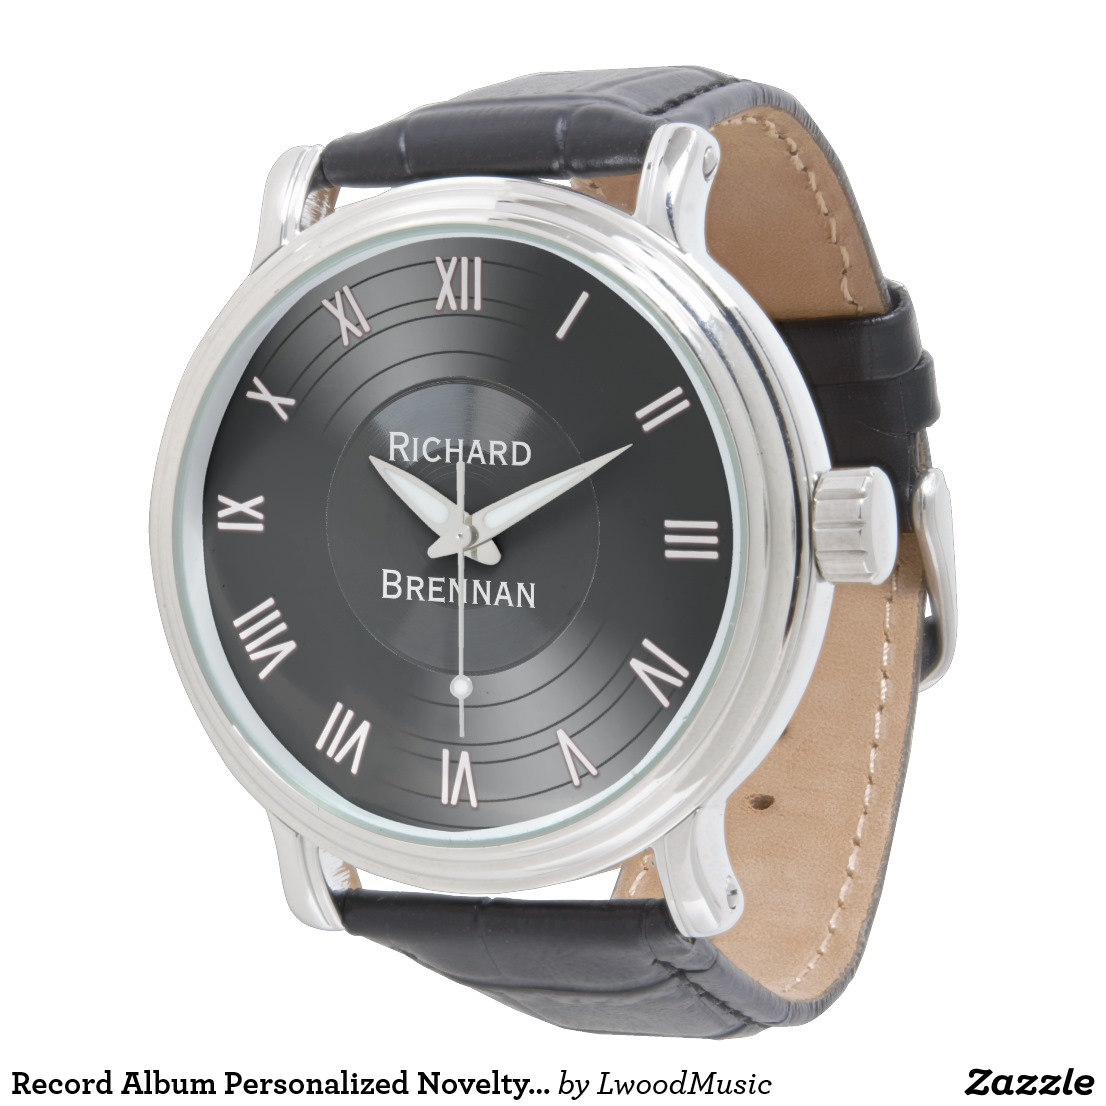 Record Album Personalized Novelty Roman Numerals Watch